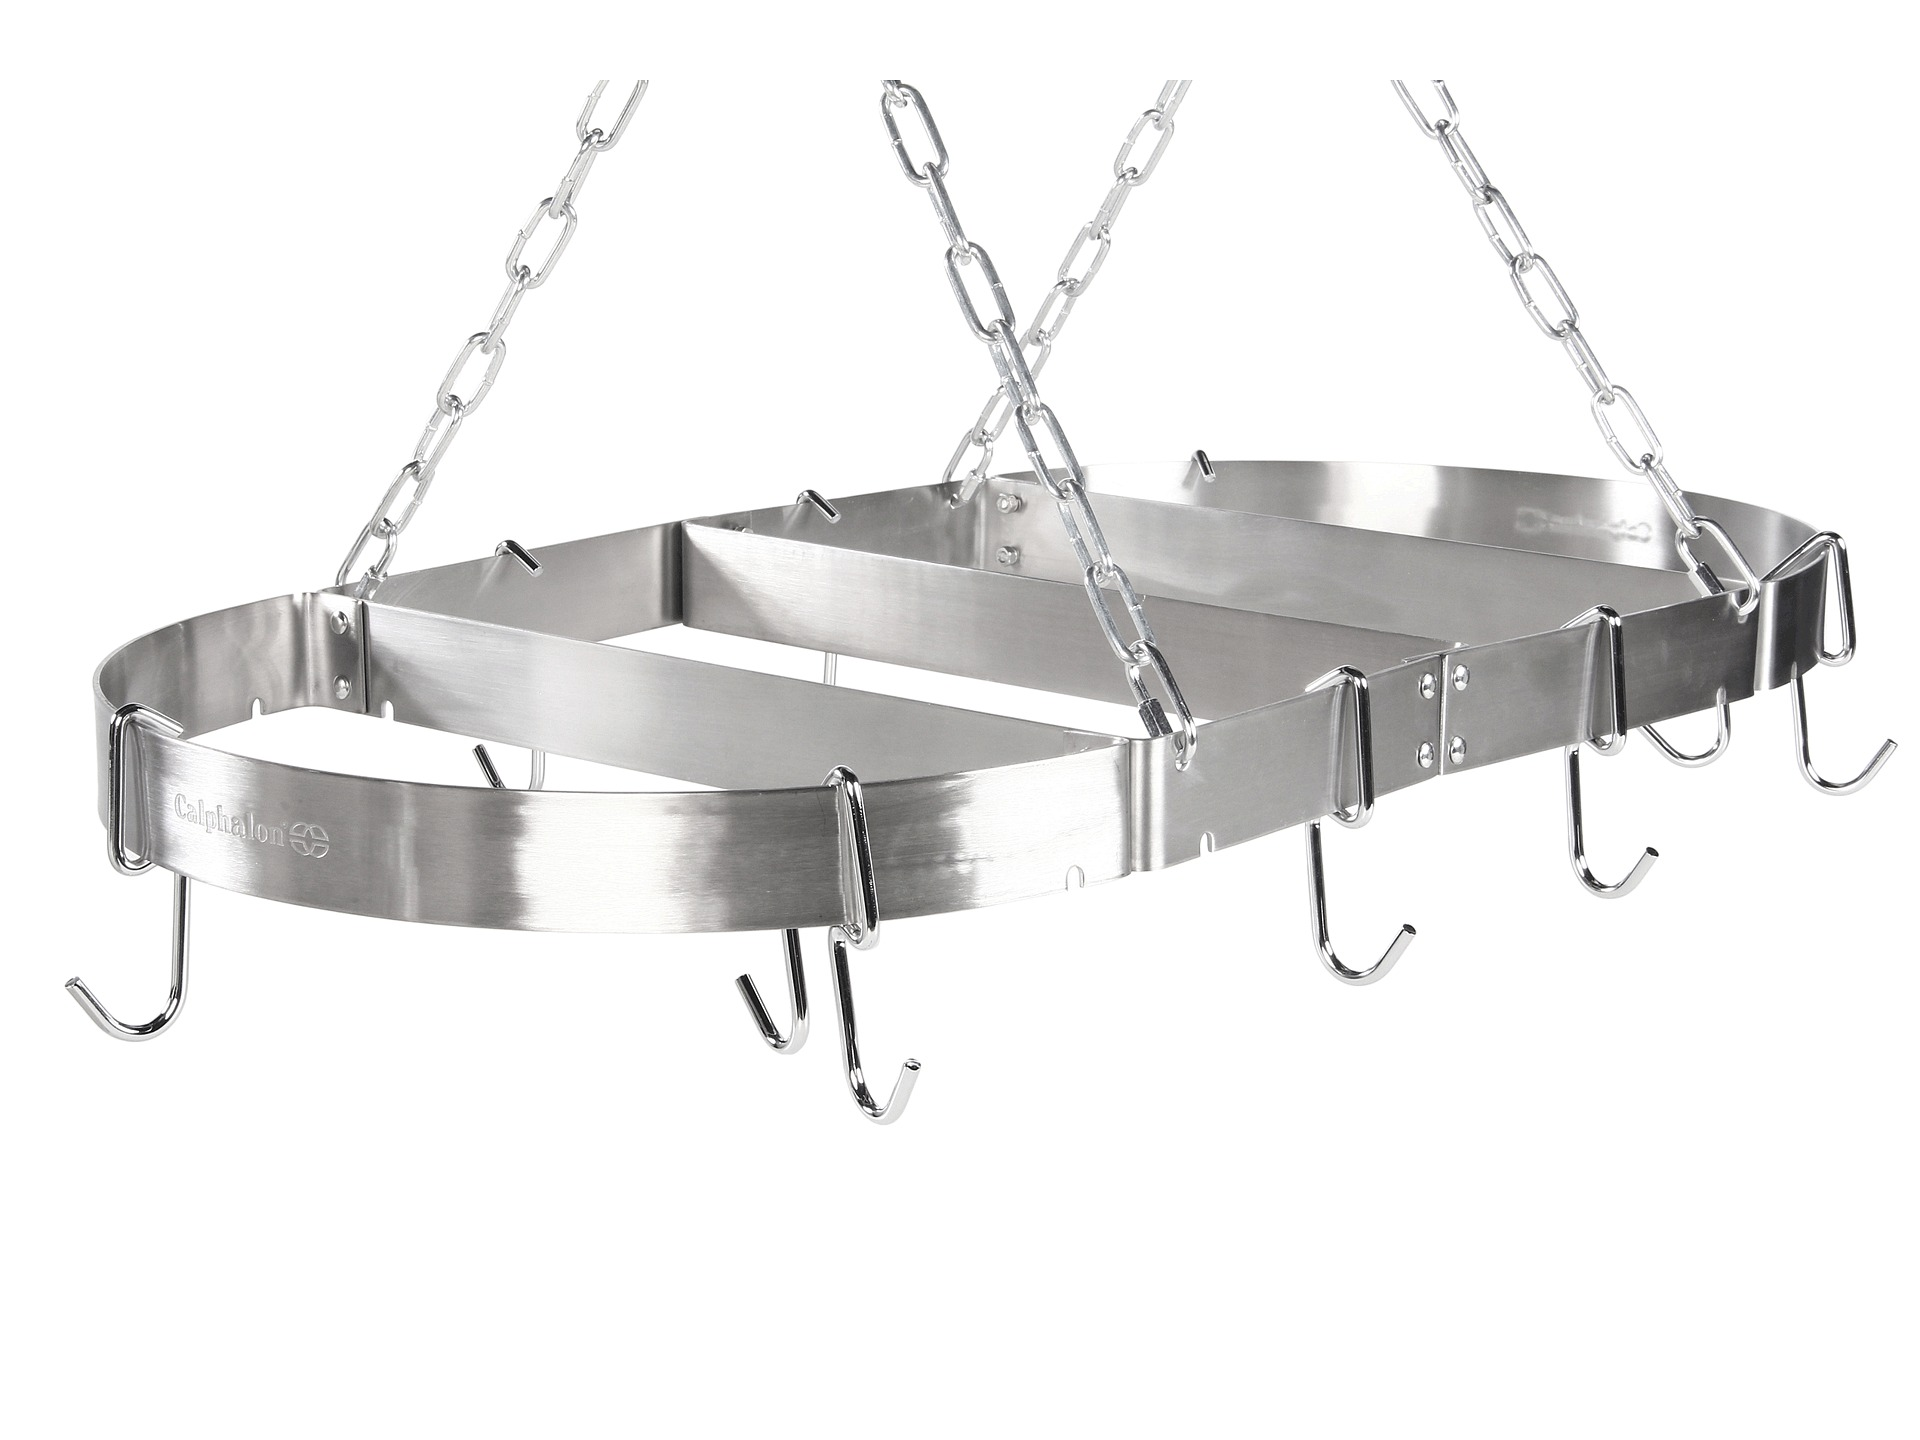 Calphalon Stainless Steel 18 X 36 Pot Rack | Shipped Free ...